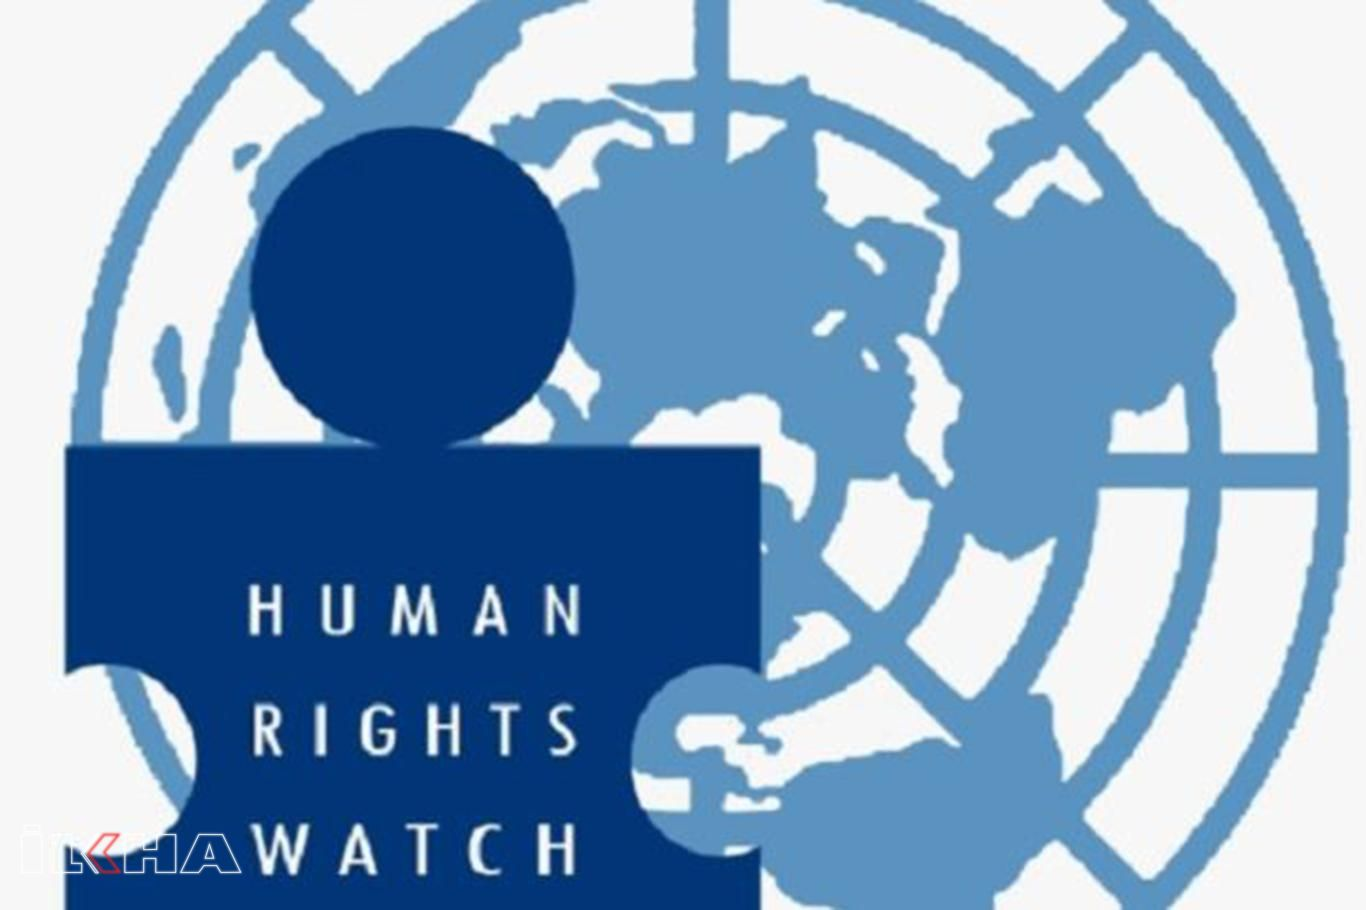 Human Rights Watch направила Жапарову рекомендации по улучшению ситуации с правами человека в Кыргызстане